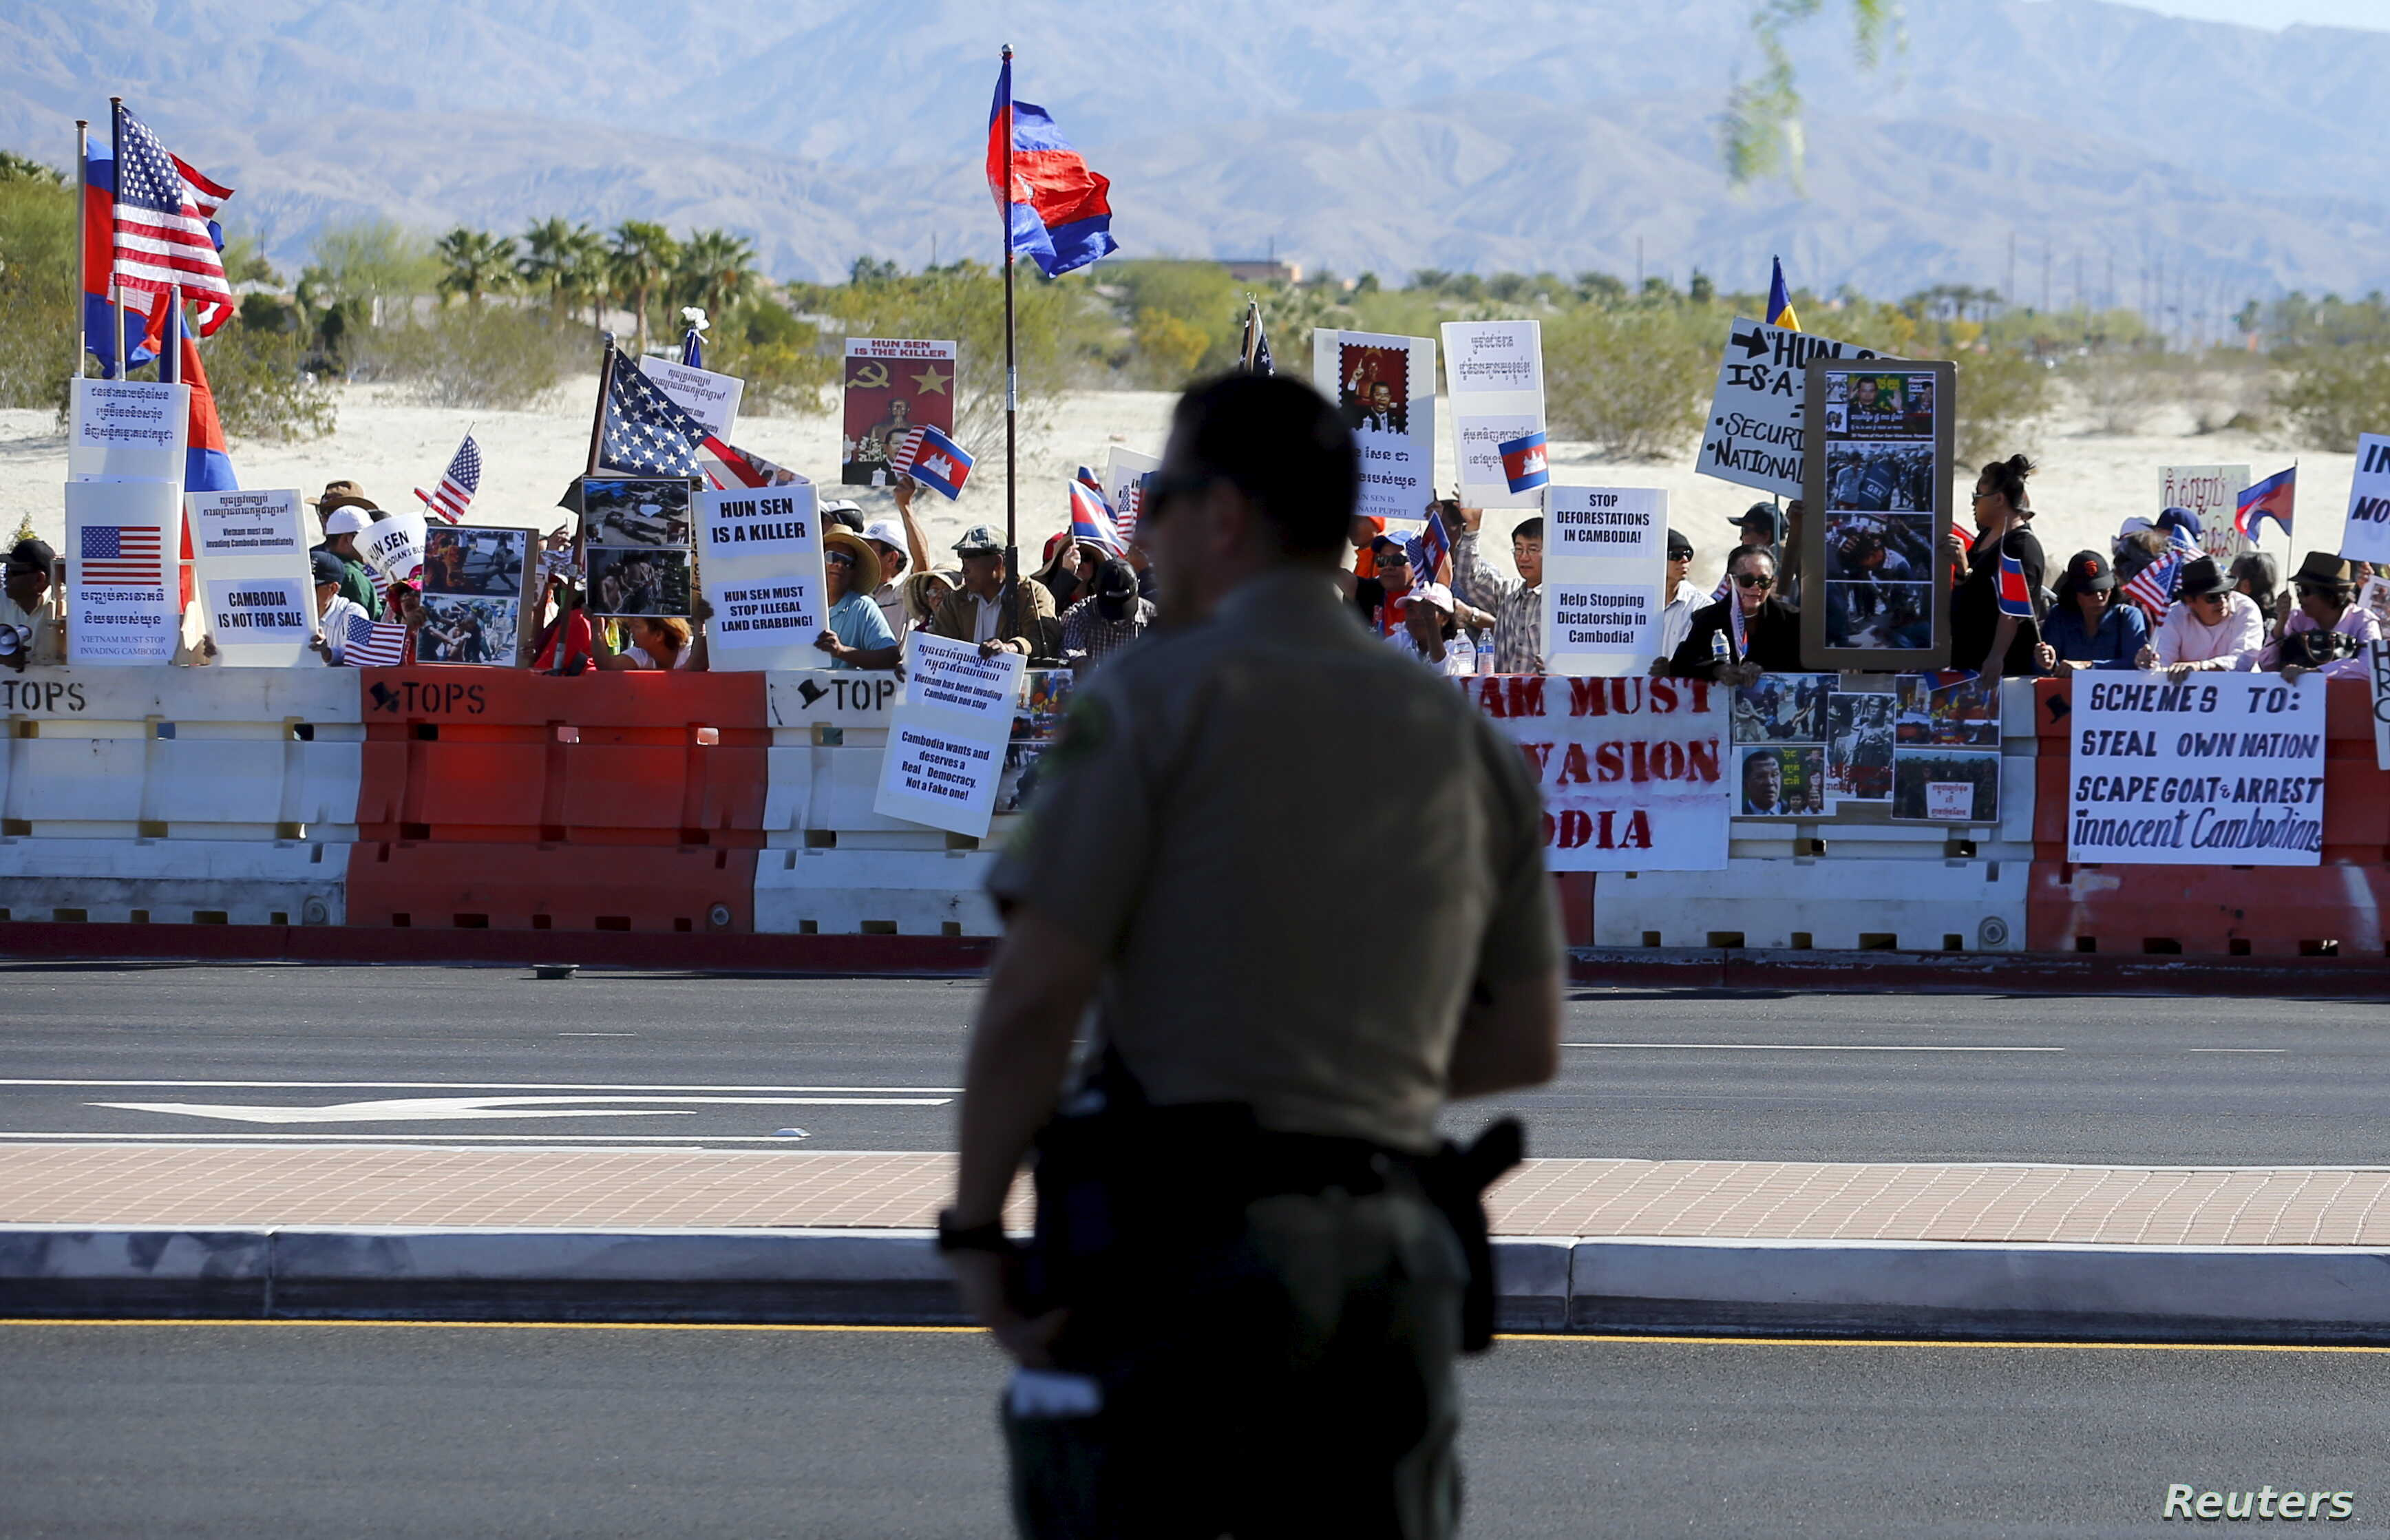 A police officer looks on as protesters line one side of a roadway leading to Sunnylands where U.S. President Obama prepares to host leaders from Southeast Asia at the ASEAN Summit in Rancho Mirage, California, Feb. 15, 2016.